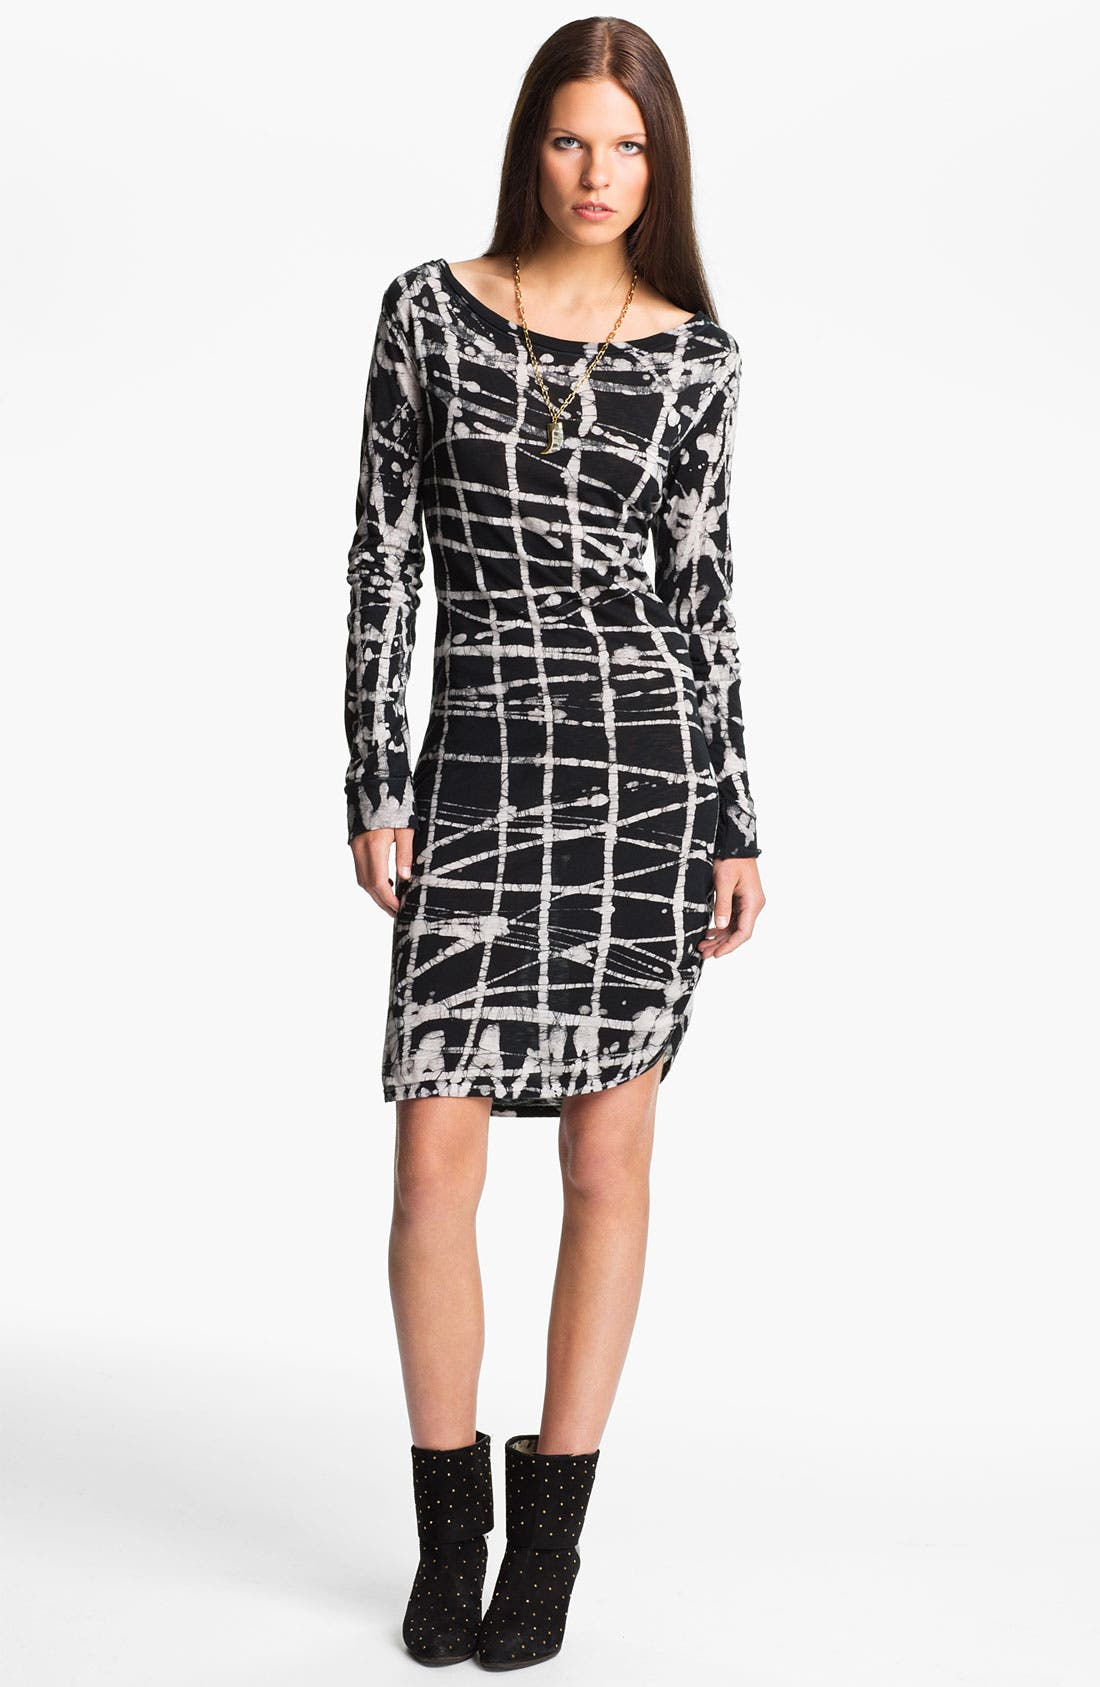 Alternate Image 1 Selected - Kelly Wearstler 'Batik Cage' Jersey Dress